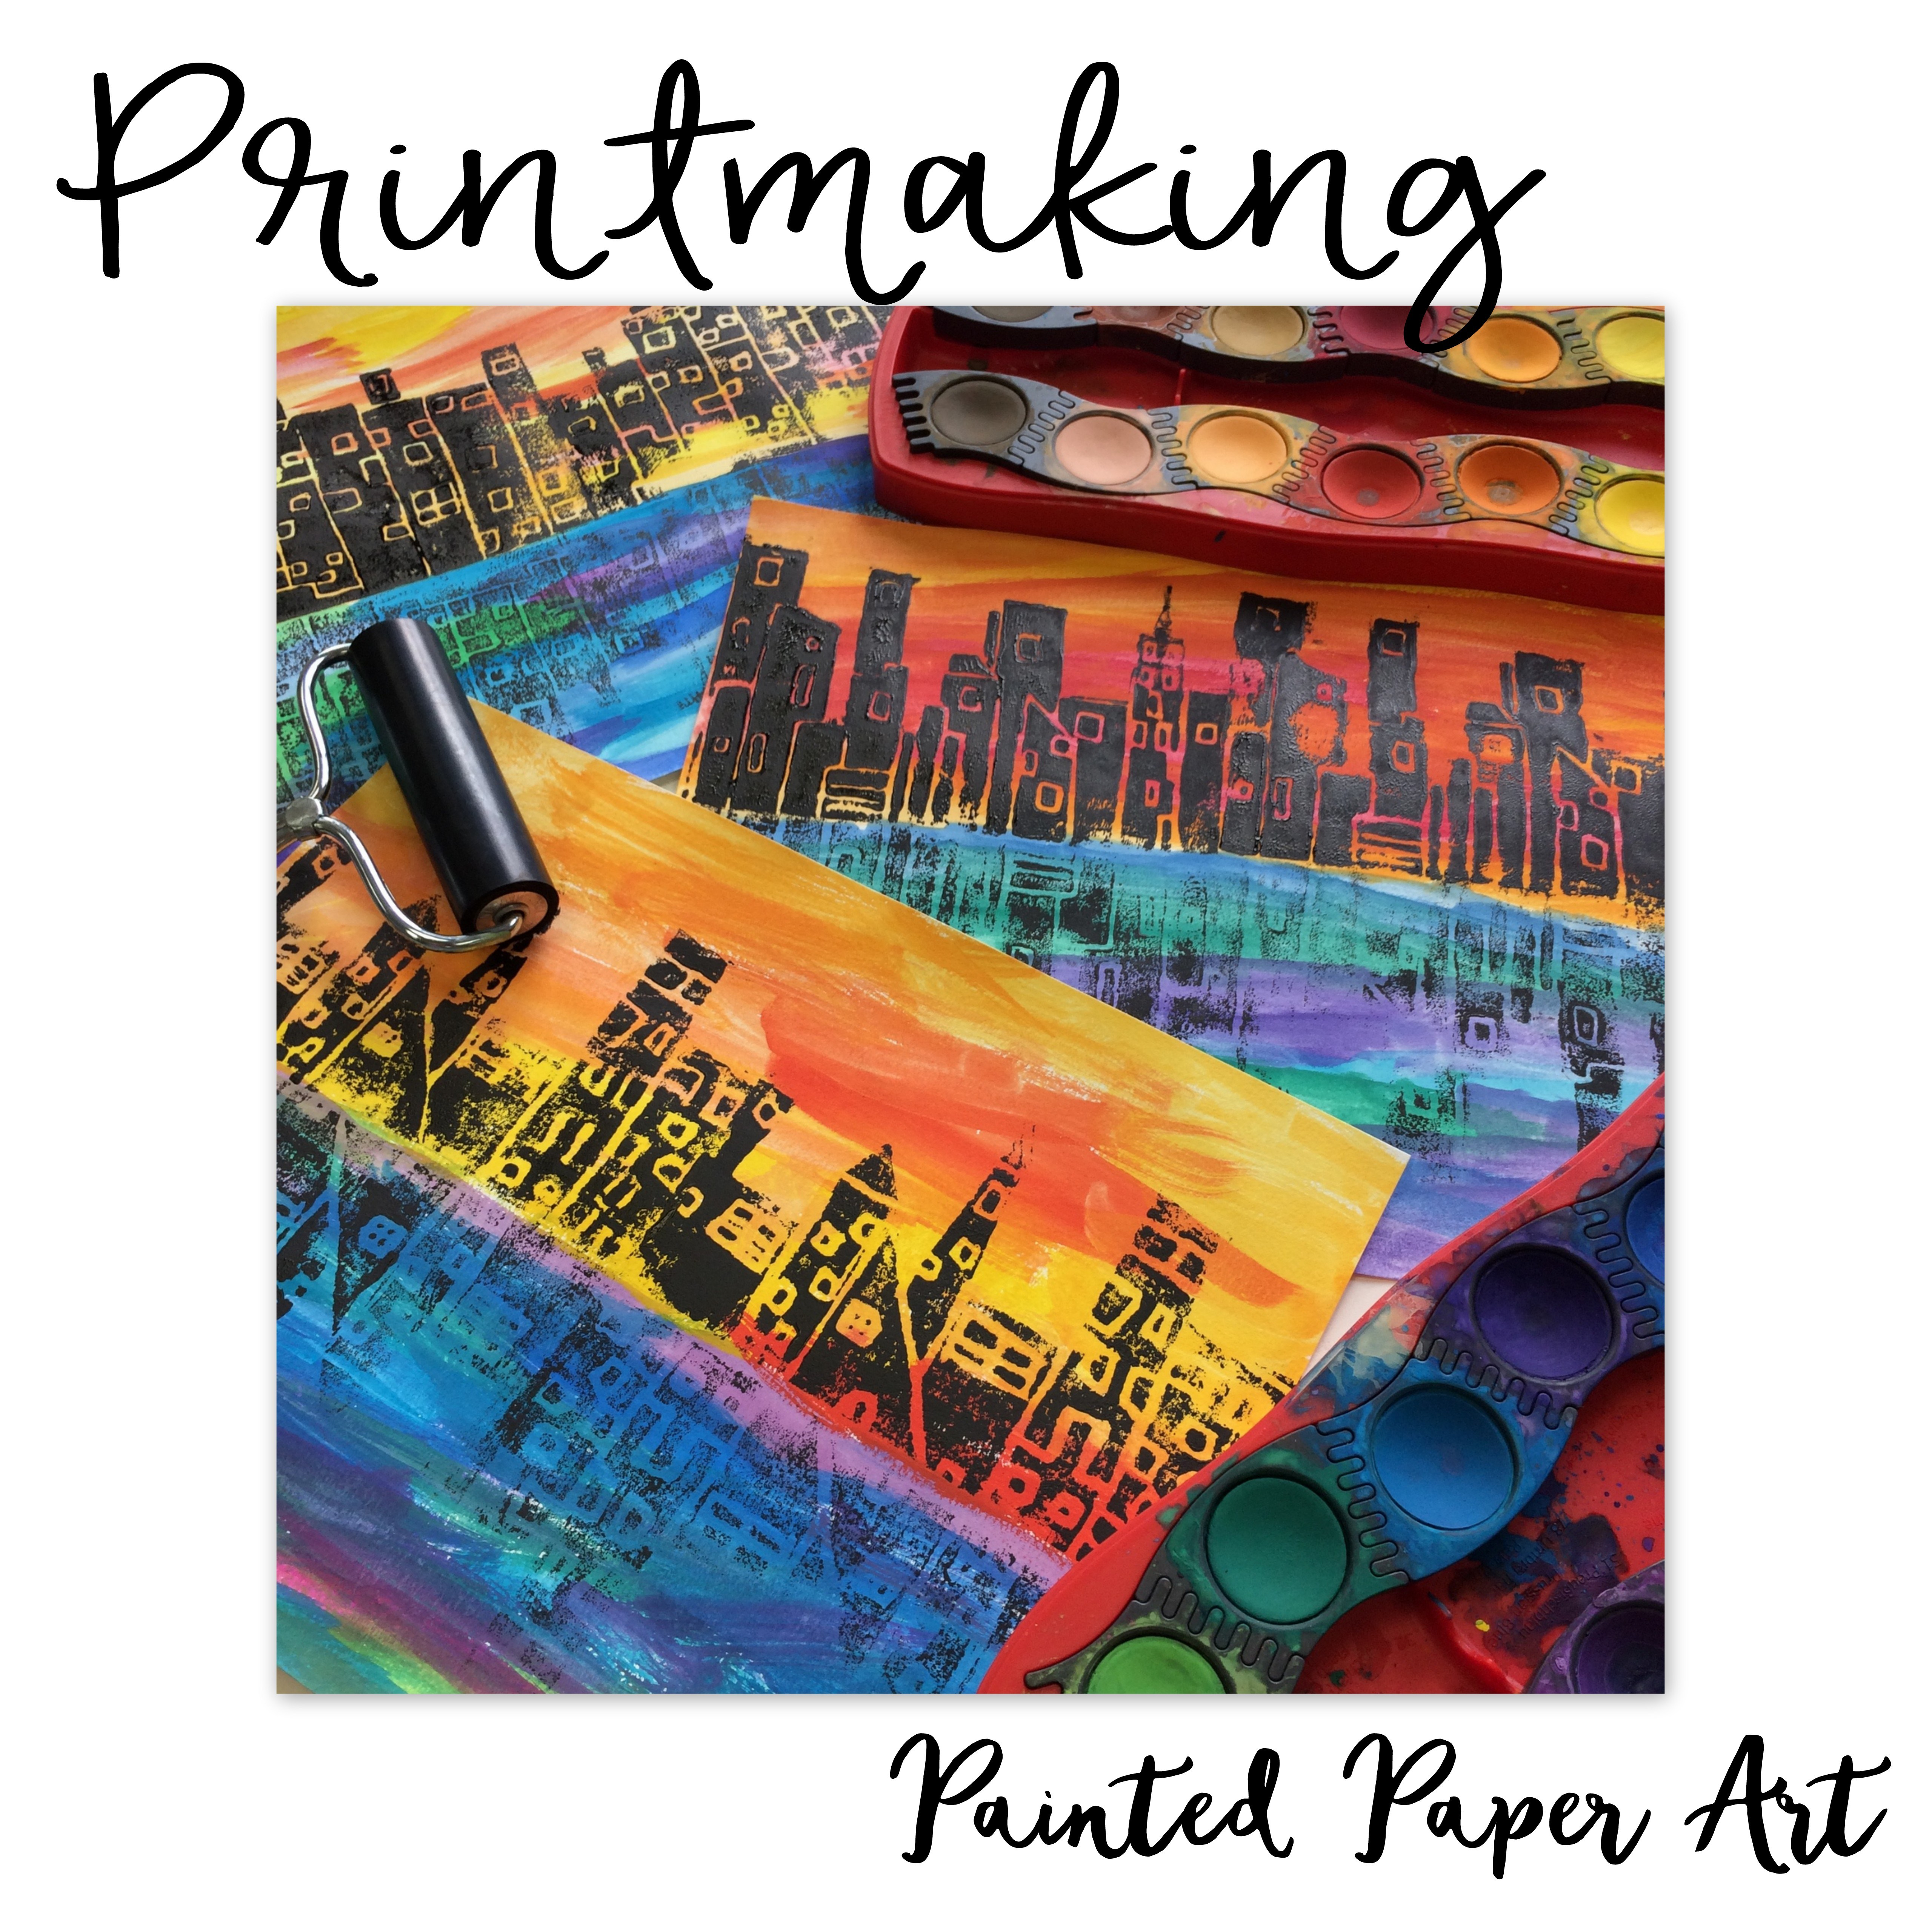 5120x5120 Printmaking I City Skylines With Reflections Painted Paper Art